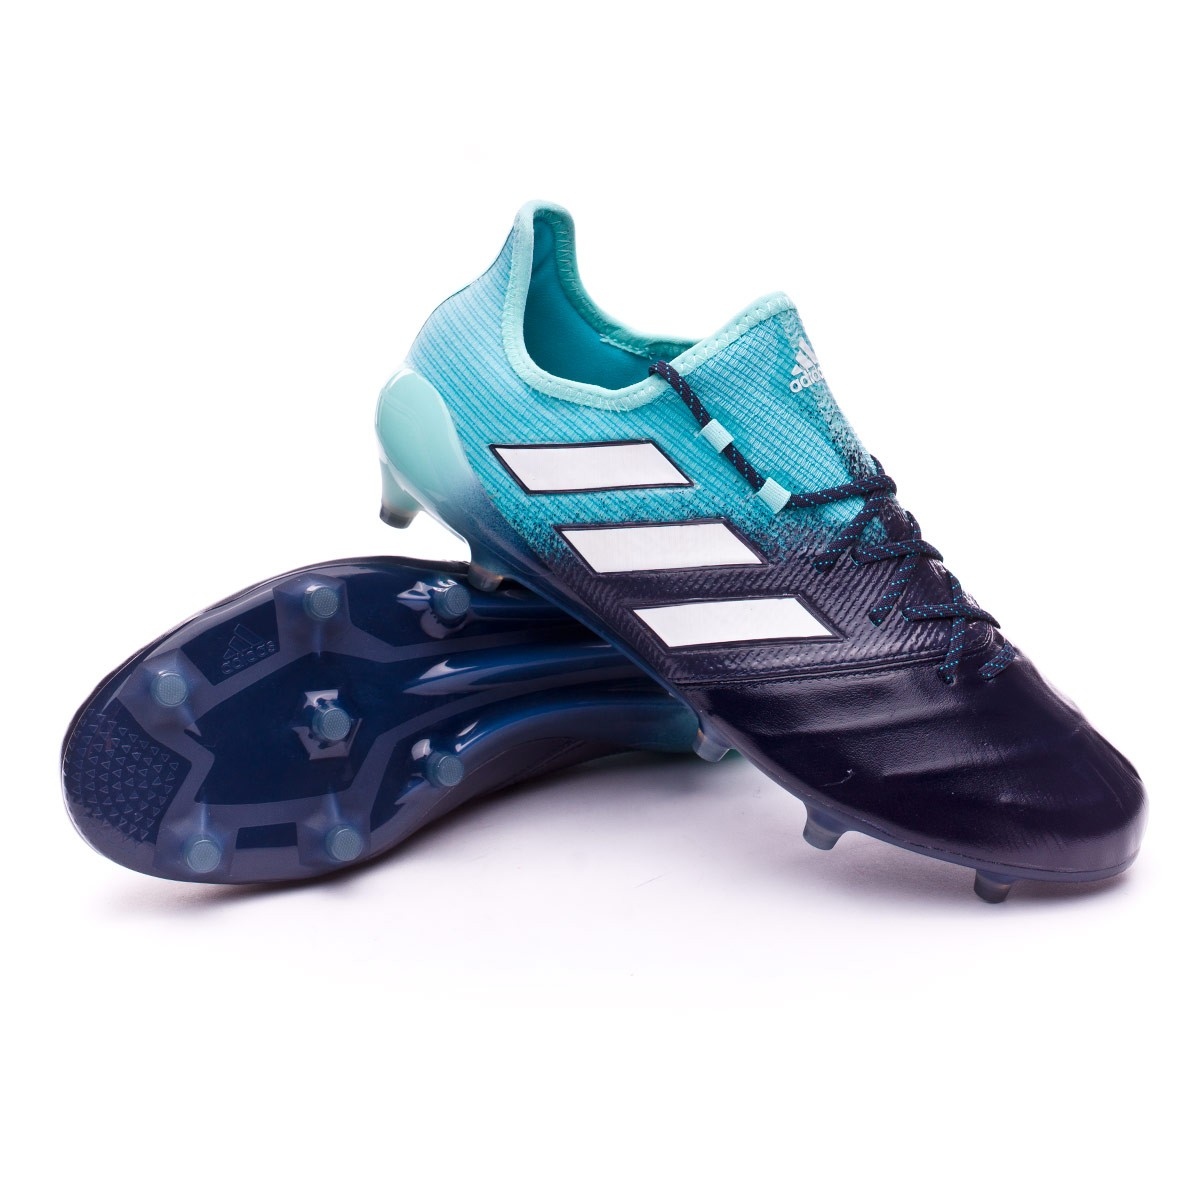 finest selection 22825 8ddea adidas Ace 17.1 FG Leather Boot